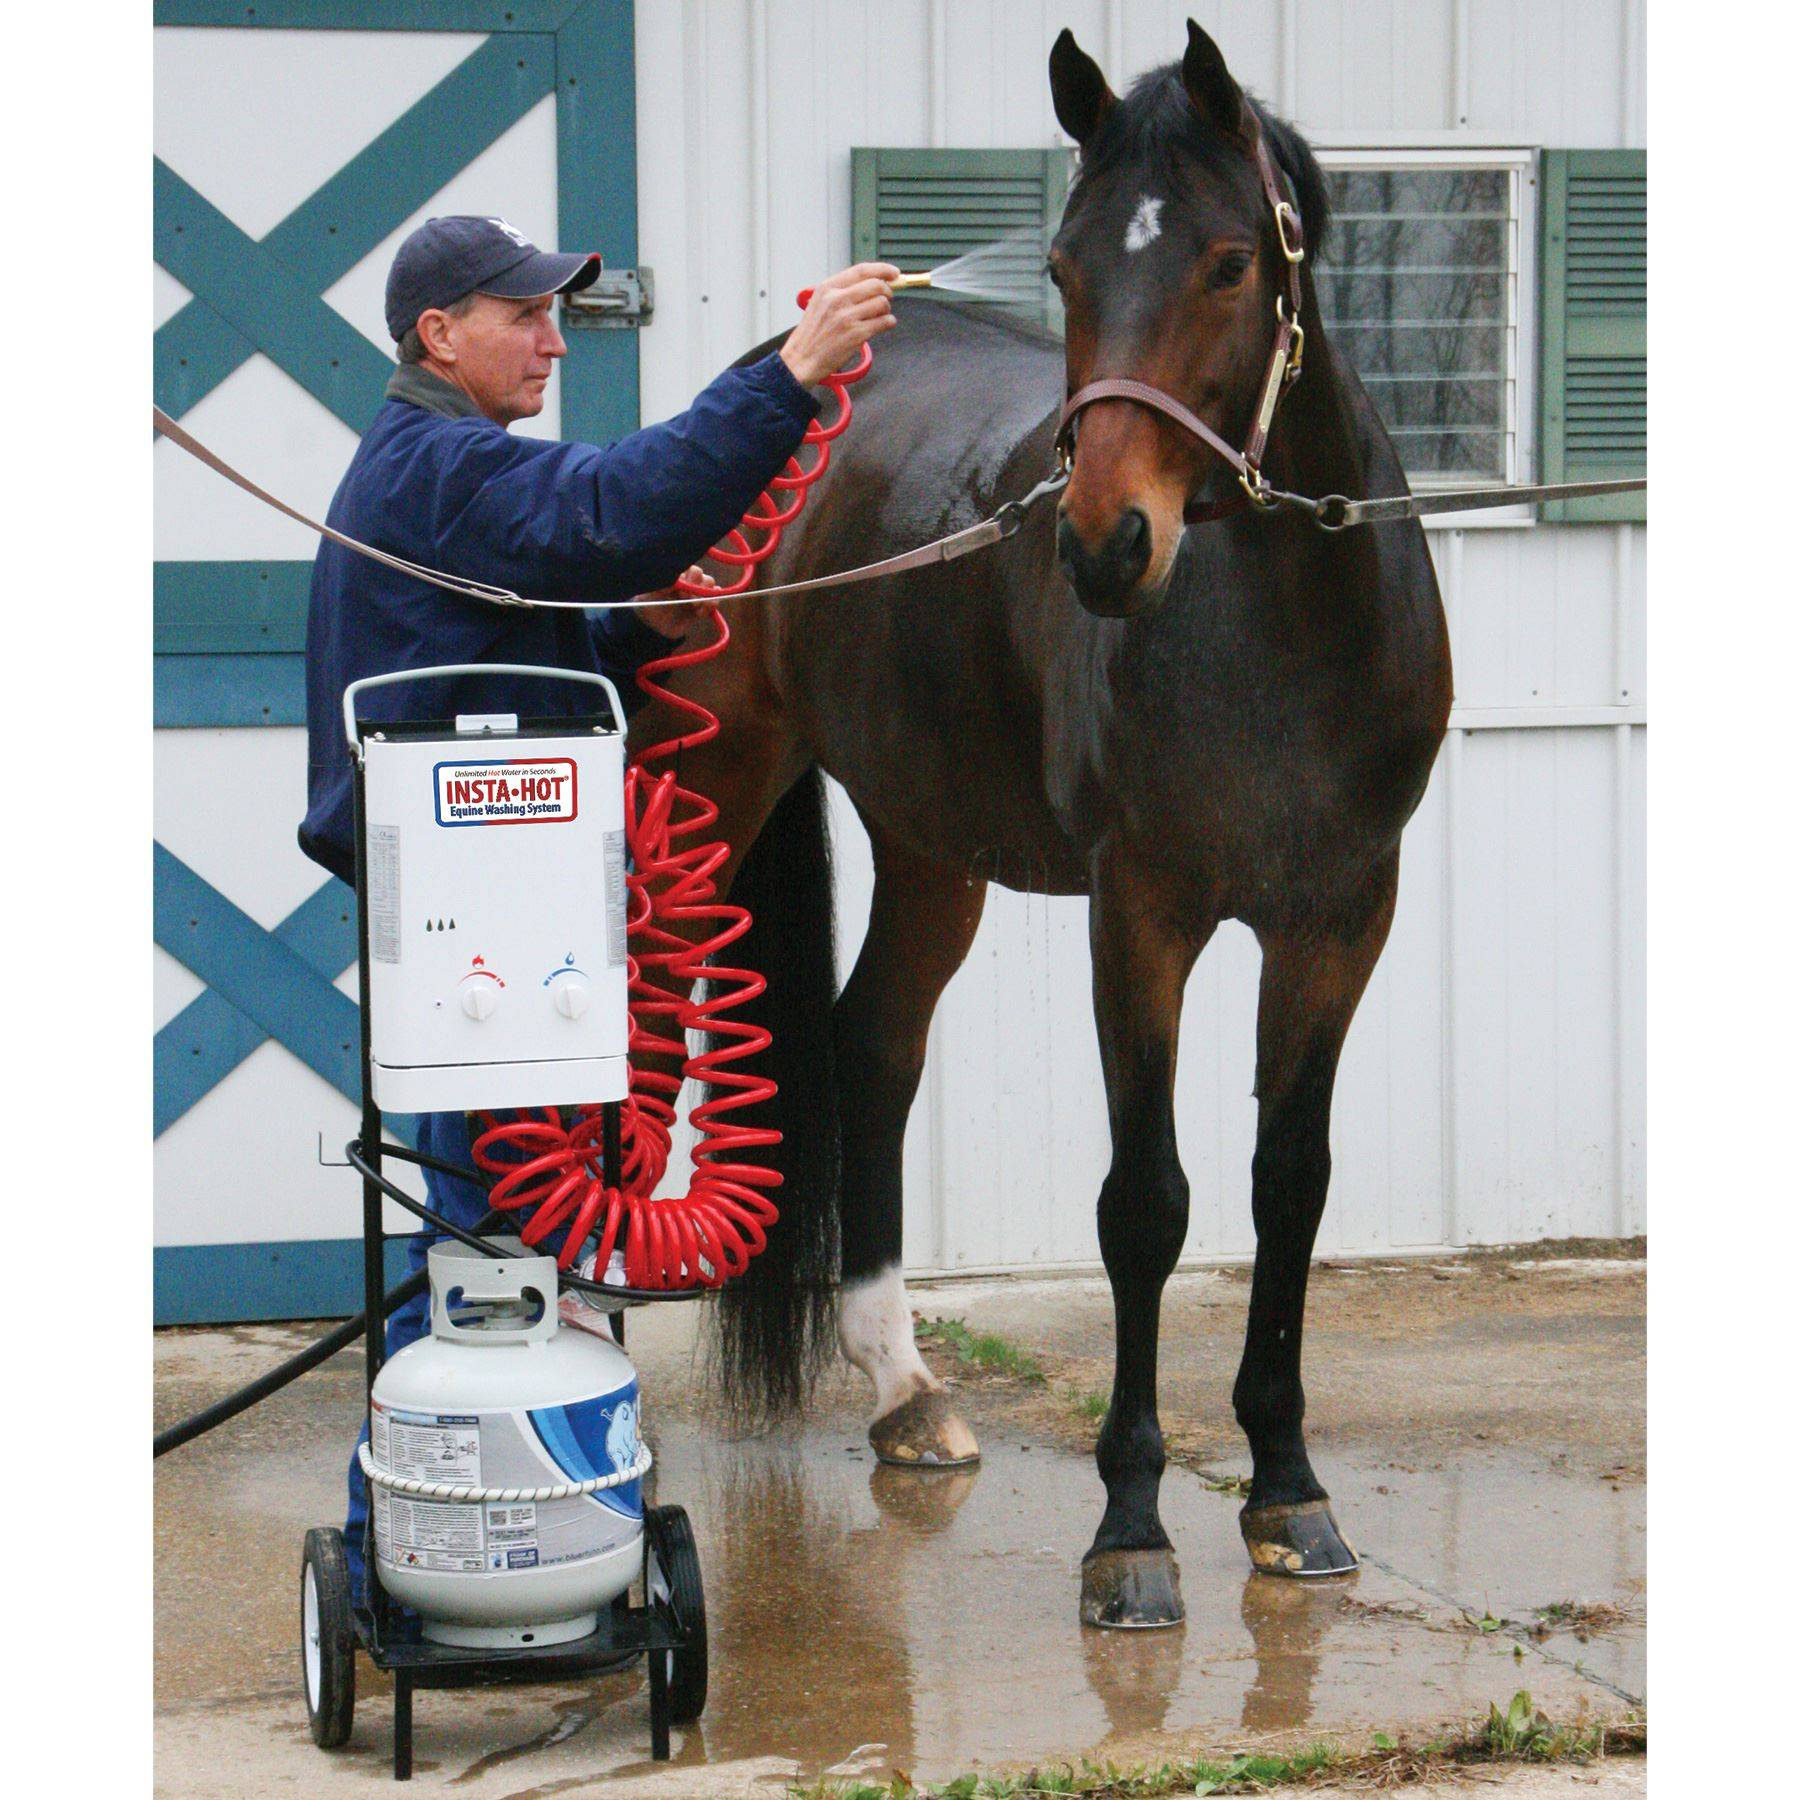 Hot Water Heater Accessories Insta Hotar Portable Equine Washing System In Accessories For Trail